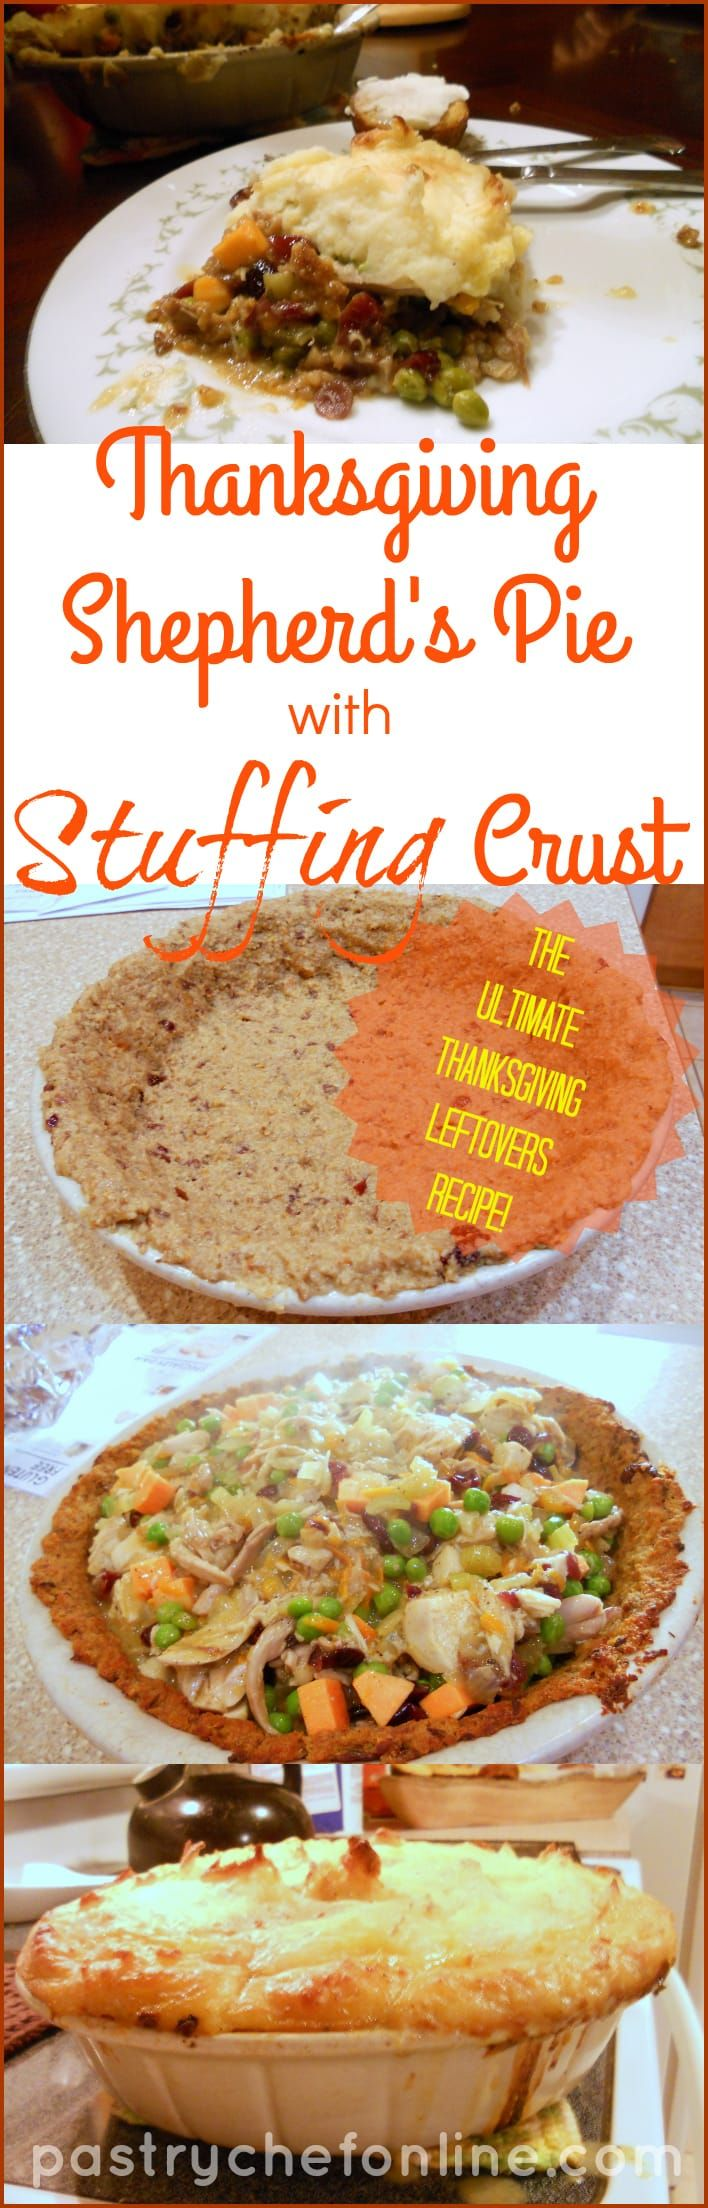 Thanksgiving Shepherd's Pie with Stuffing Crust is a creative way to use up leftovers, but it's so delicious, you might want to make it from scratch!